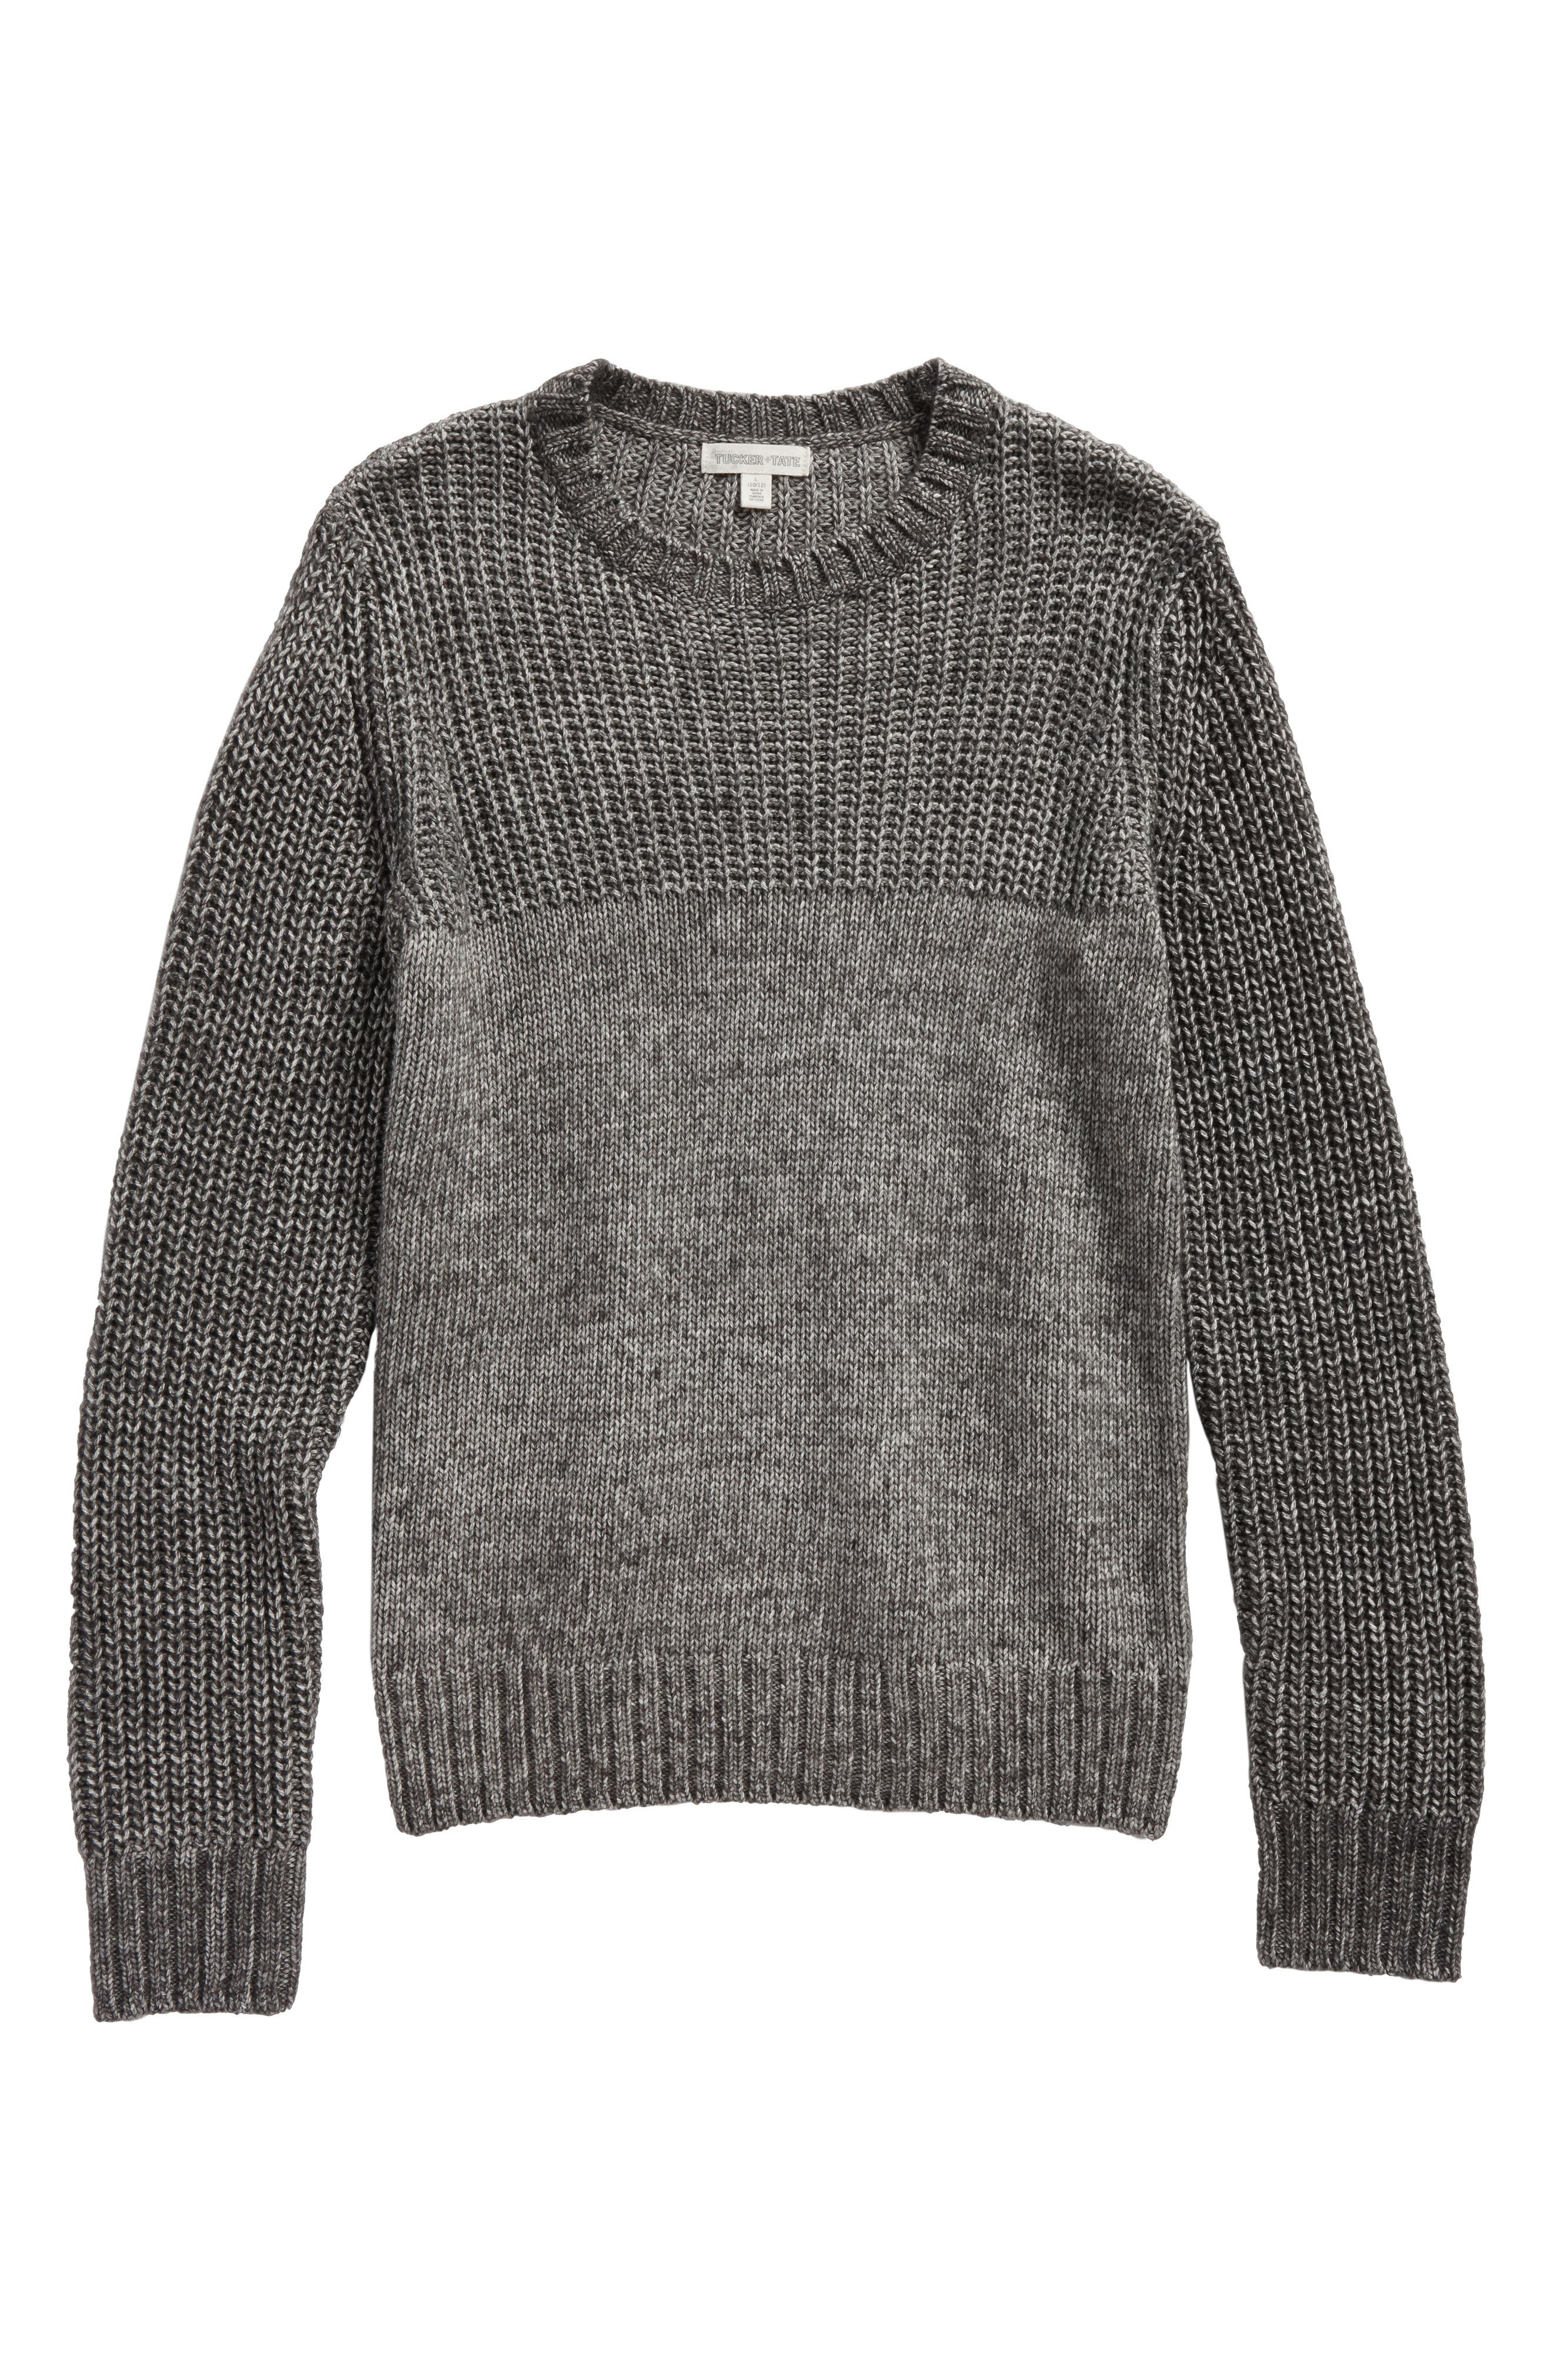 Alternate Image 1 Selected - Tucker + Tate Mix Knit Sweater (Big Boys)